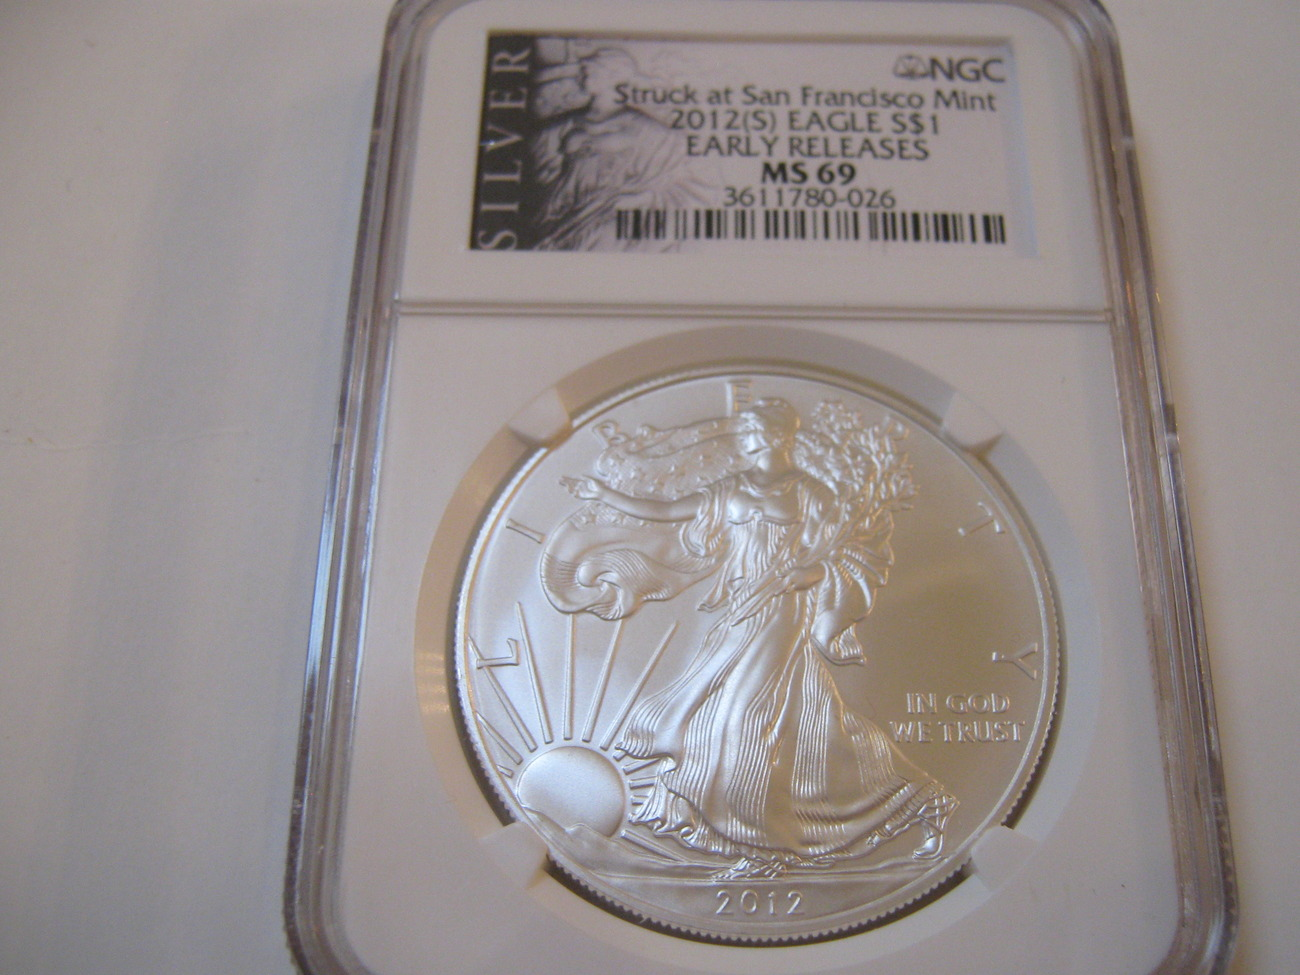 Primary image for 2012(S) Silver Eagle , NGC , MS 69